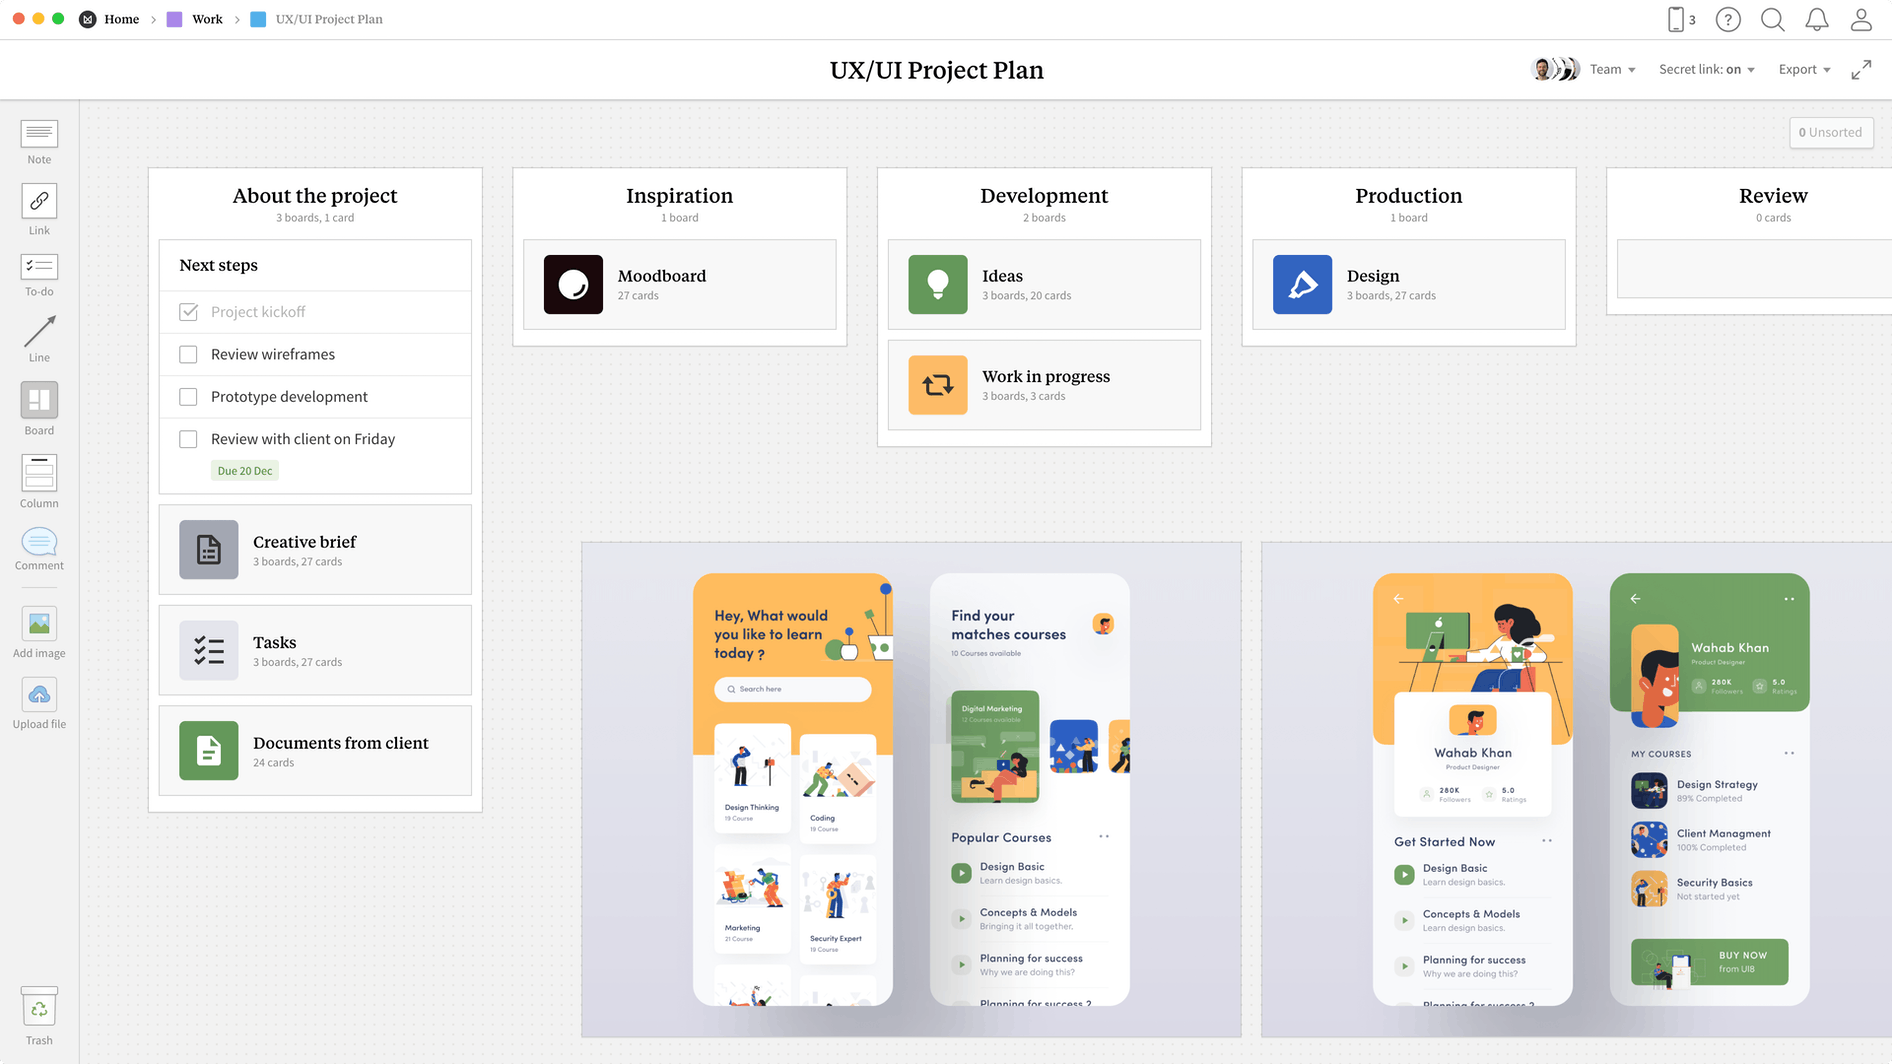 UX/UI Project Plan Template, within the Milanote app